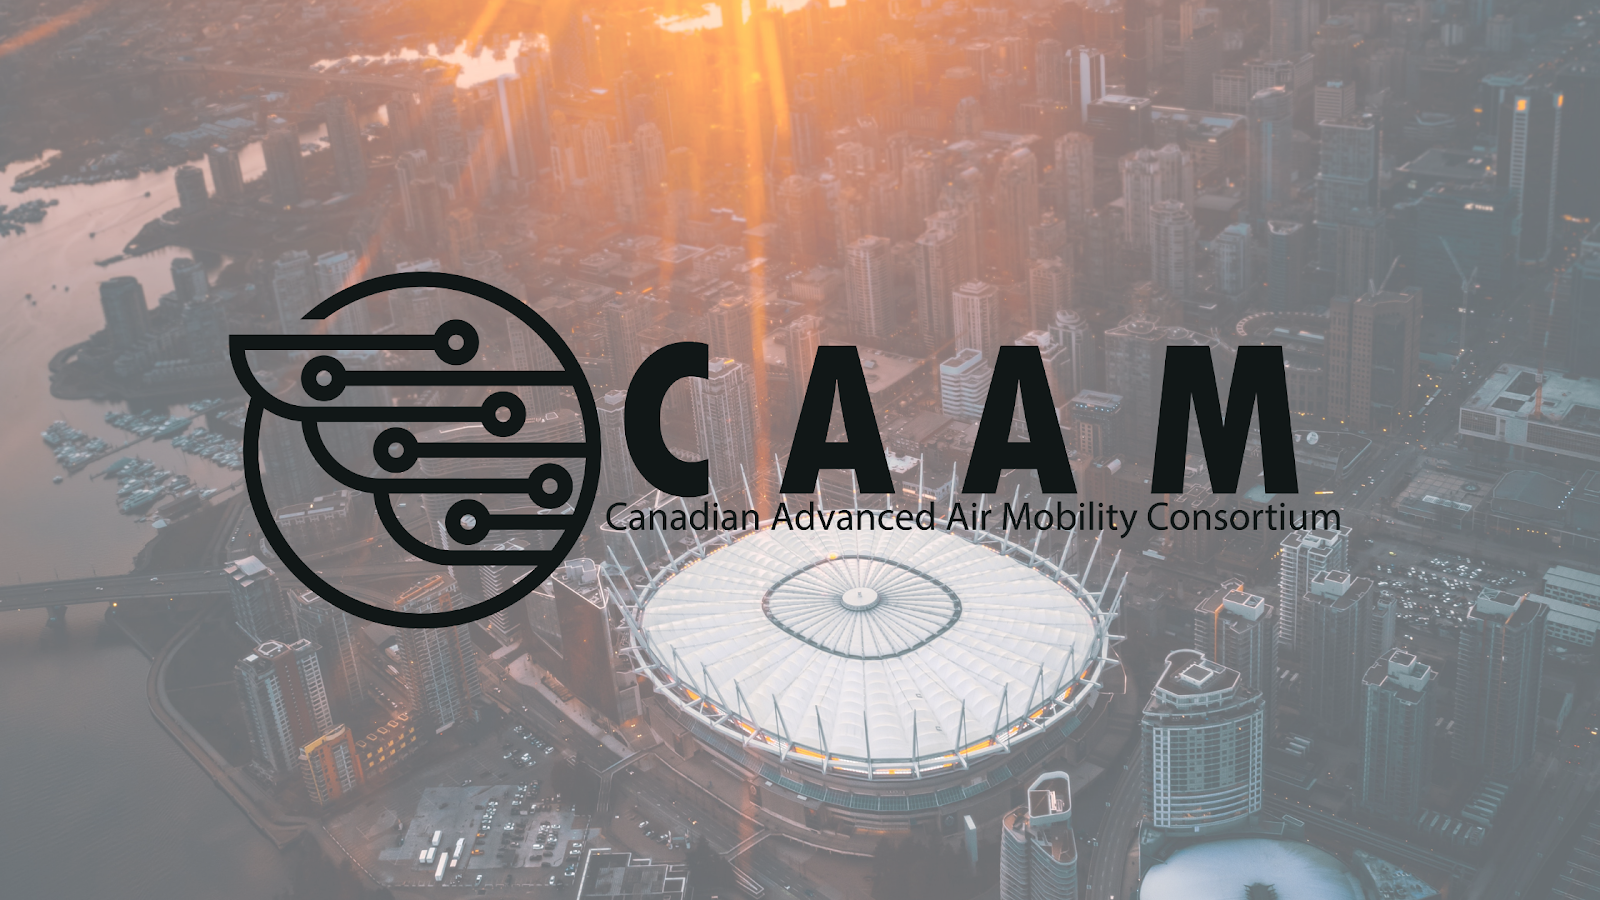 CAAM Banner Image